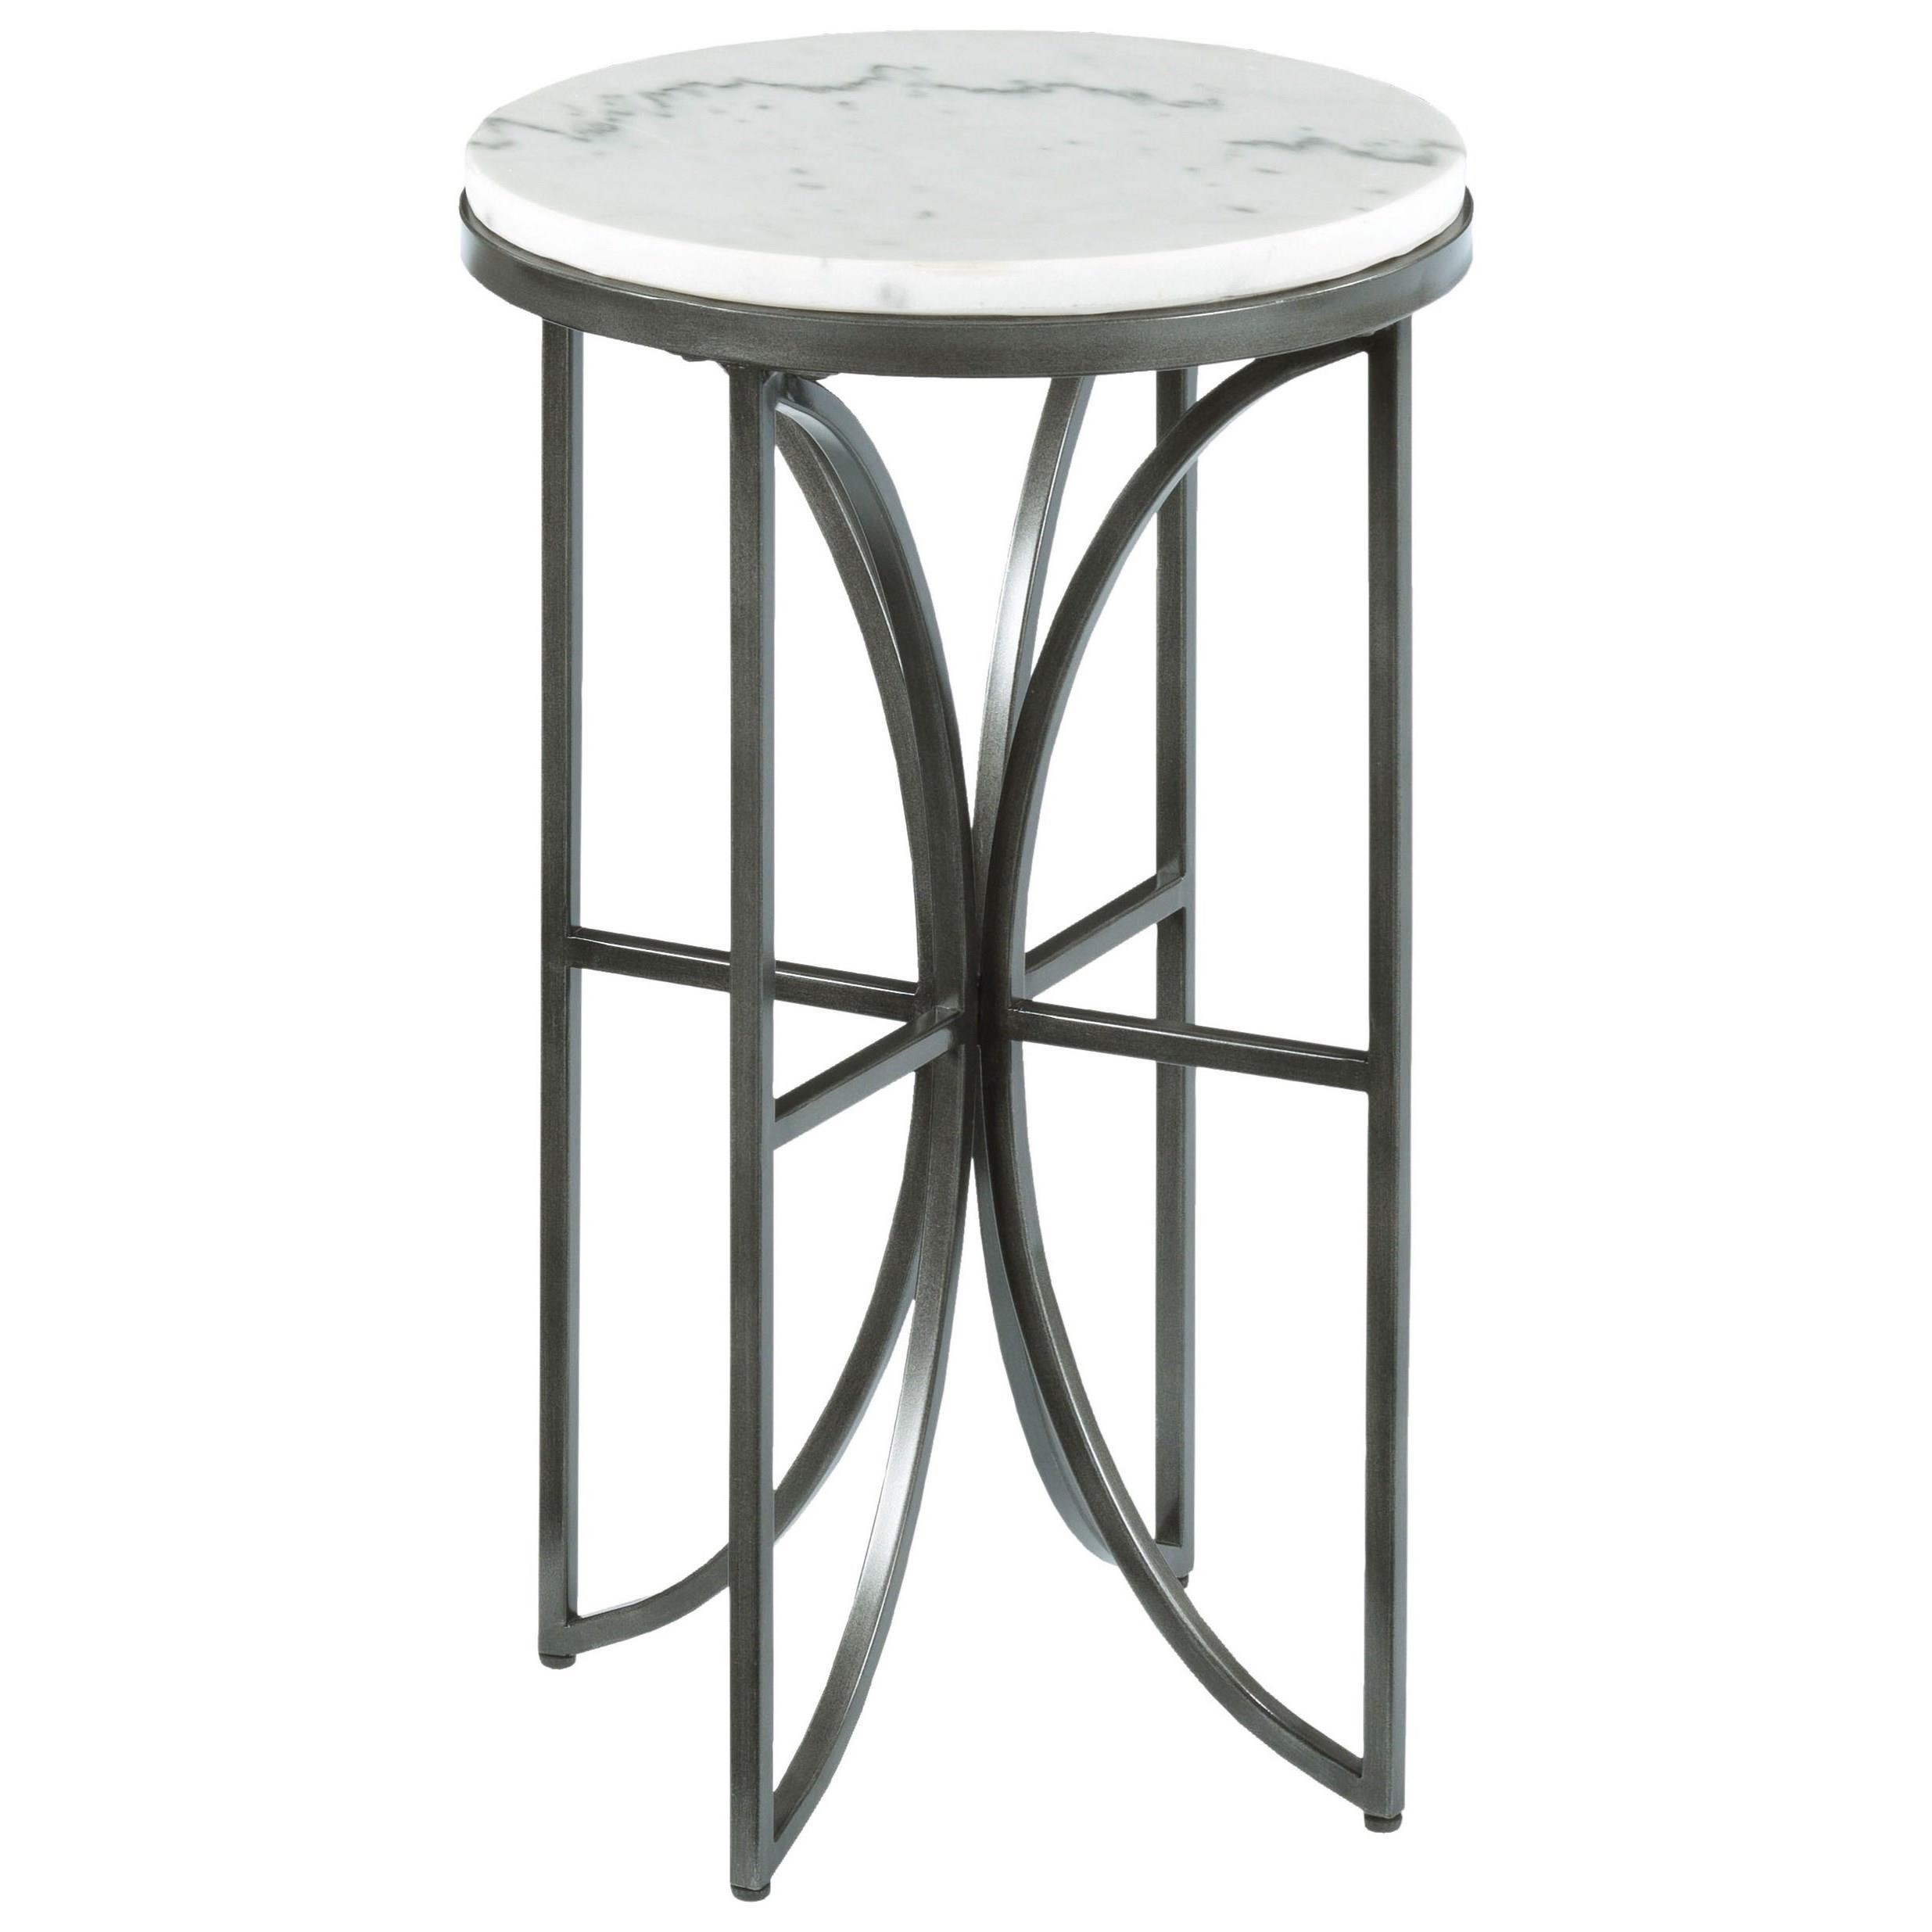 Small Round Accent Table with Marble Top by Hammary